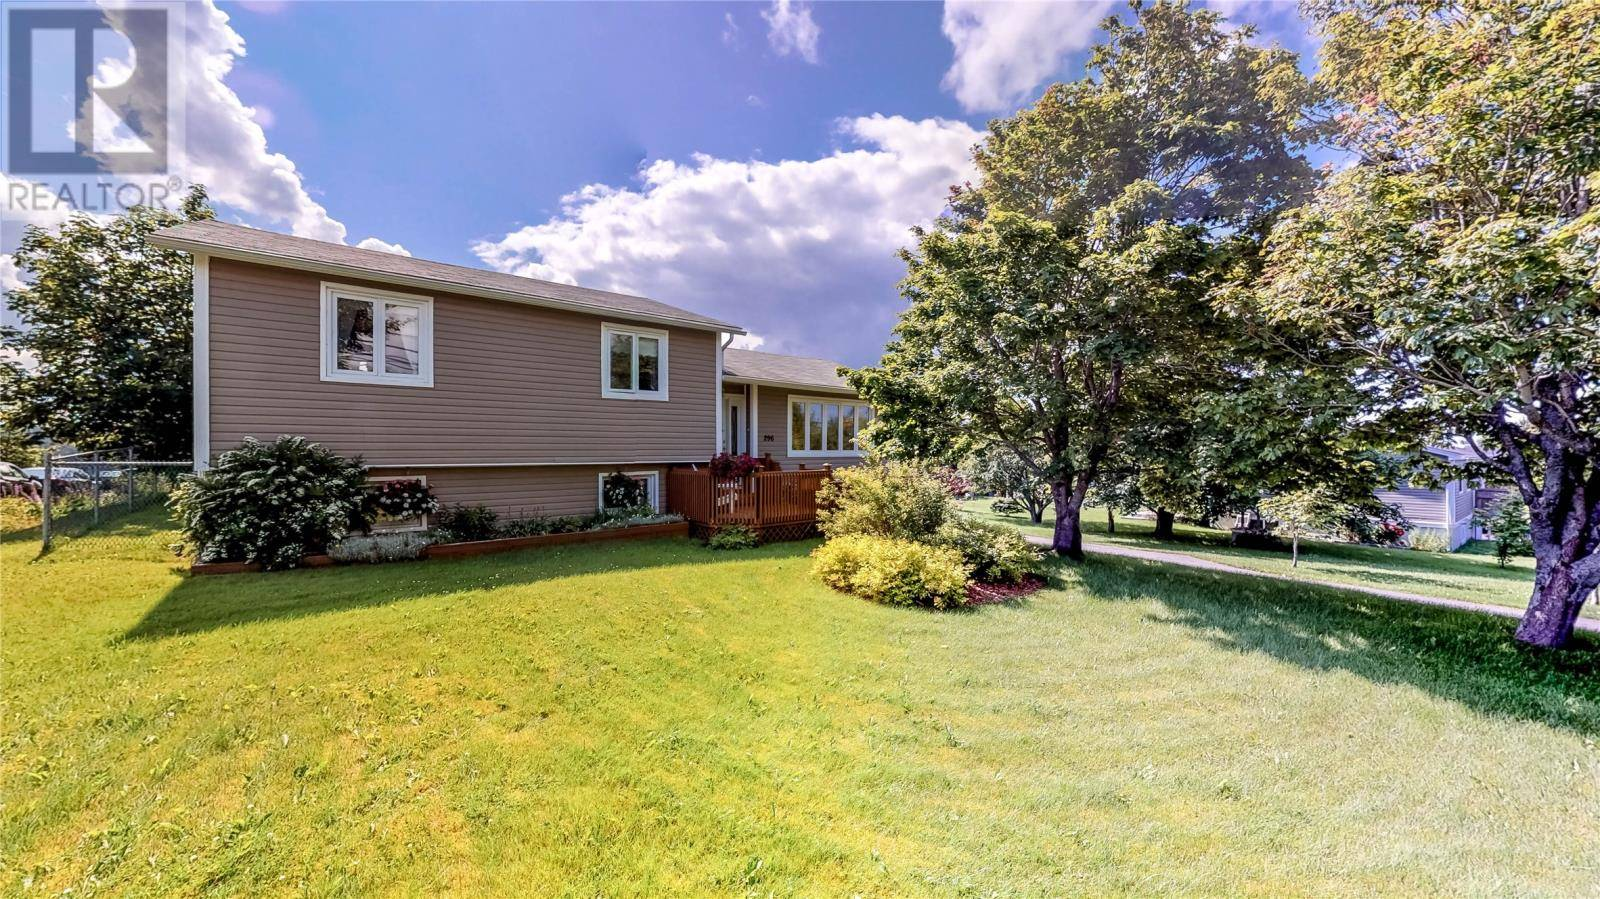 House for sale at 296 Fowlers Rd Conception Bay South Newfoundland - MLS: 1200153